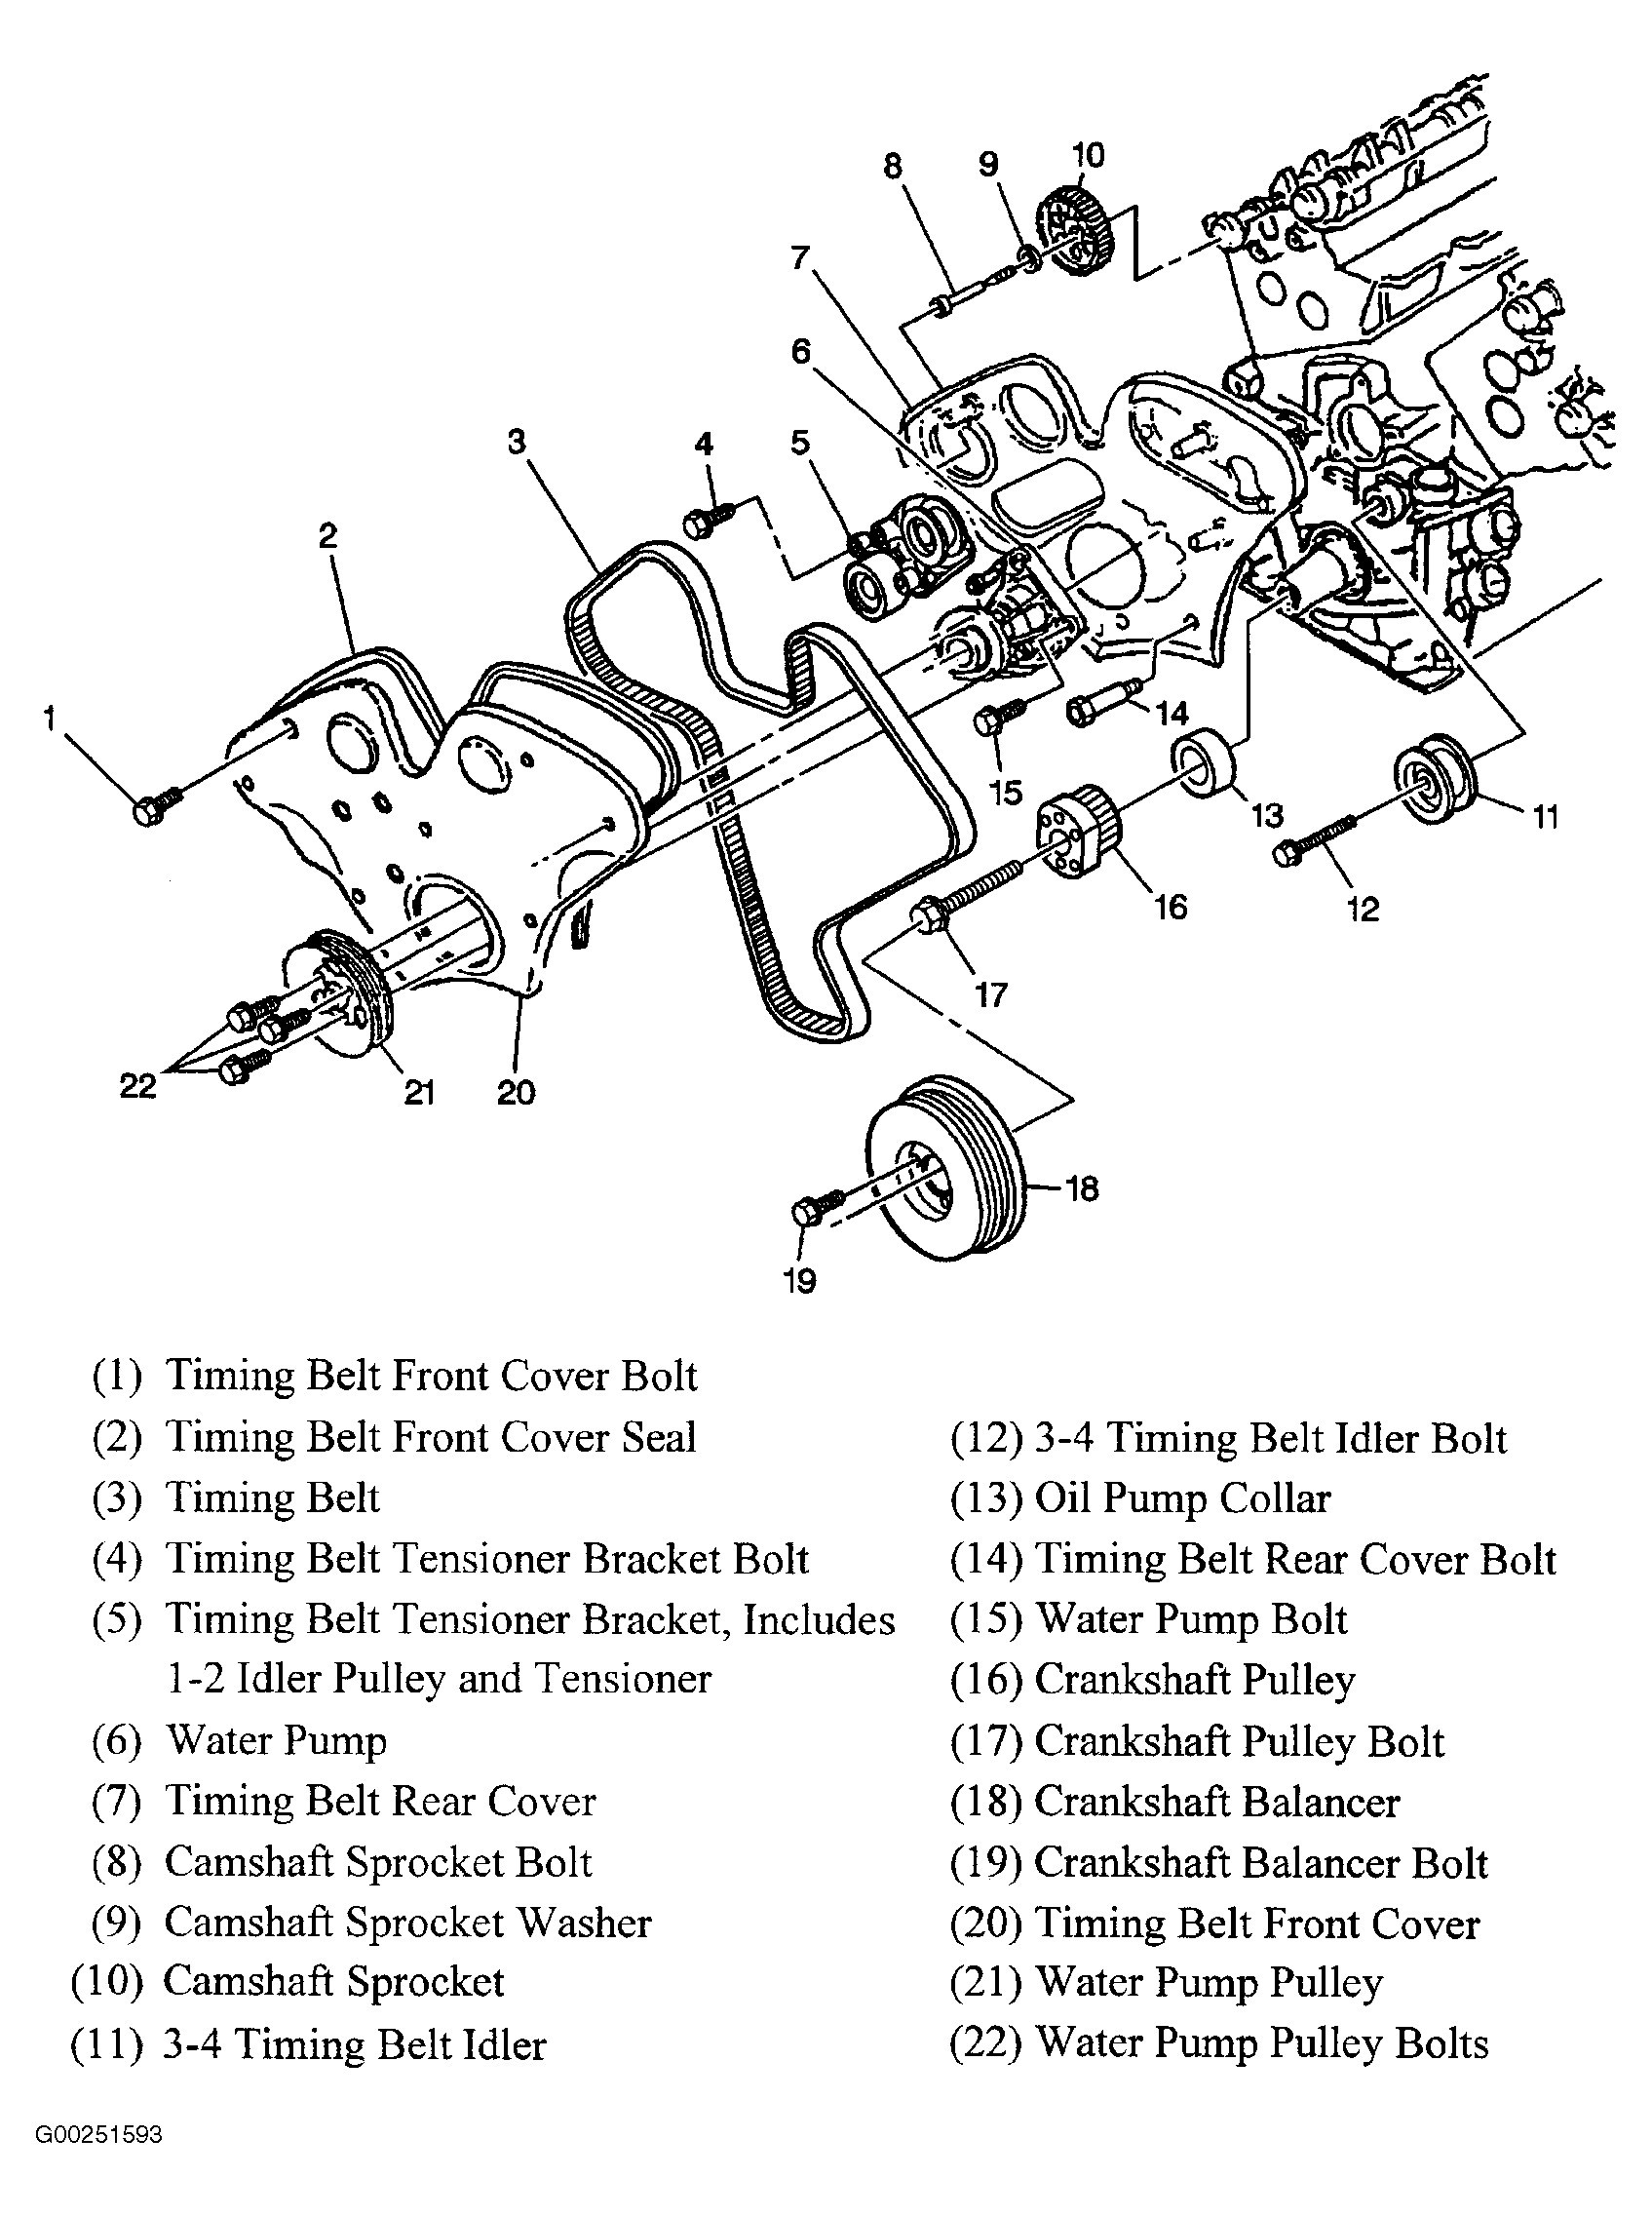 Car Engine Oil Flow Diagram 534 Ford Filter House Wiring Hyundai Body Parts Of